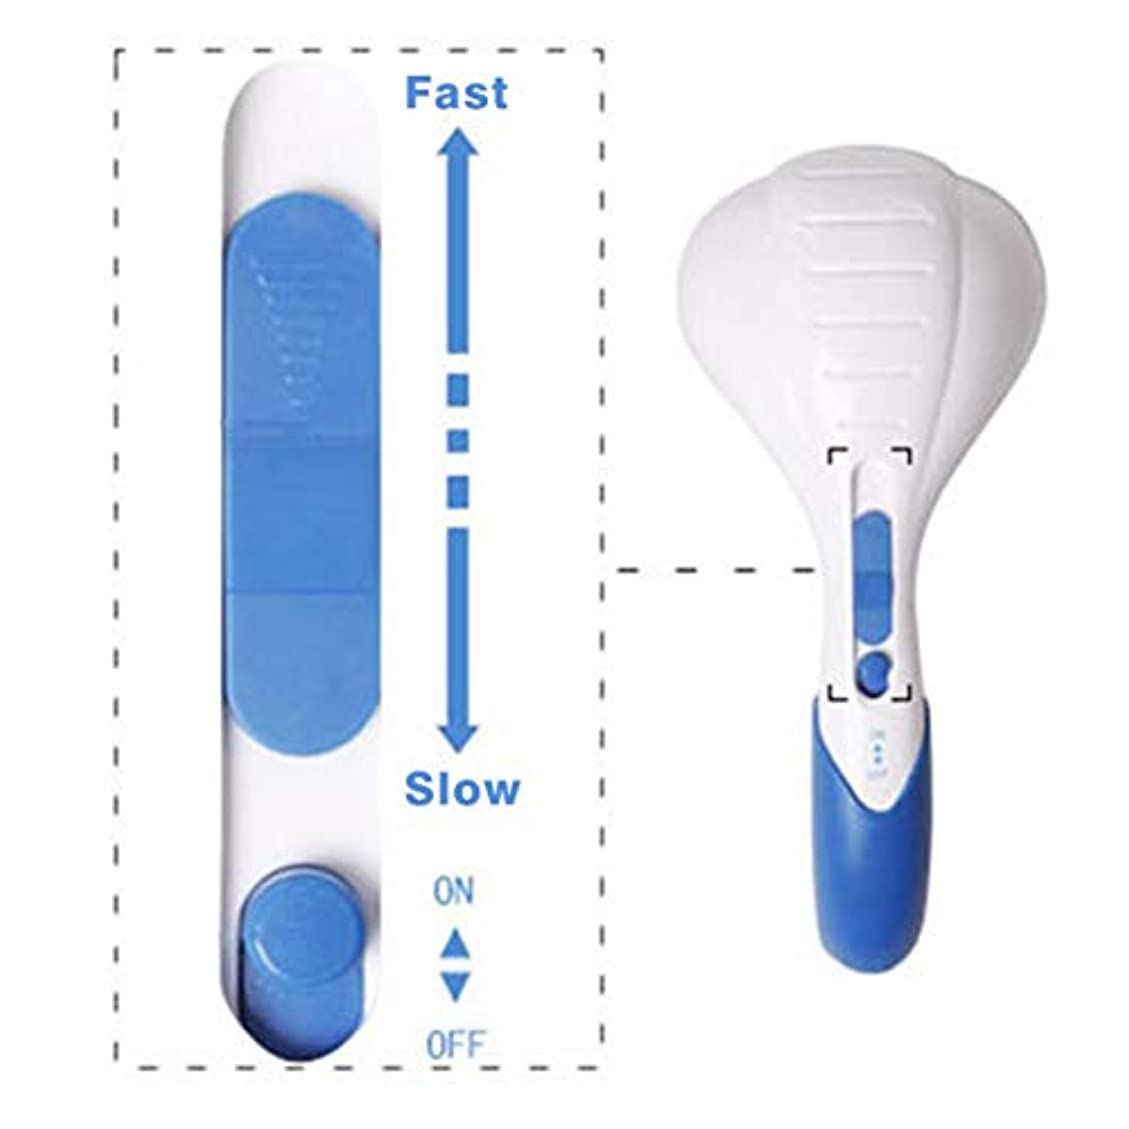 鰐提出するカイウスHousehold Music Relief Massager Lightweight Full Body Handheld Electric Vibrating Neck Back Relax Body Massaging...